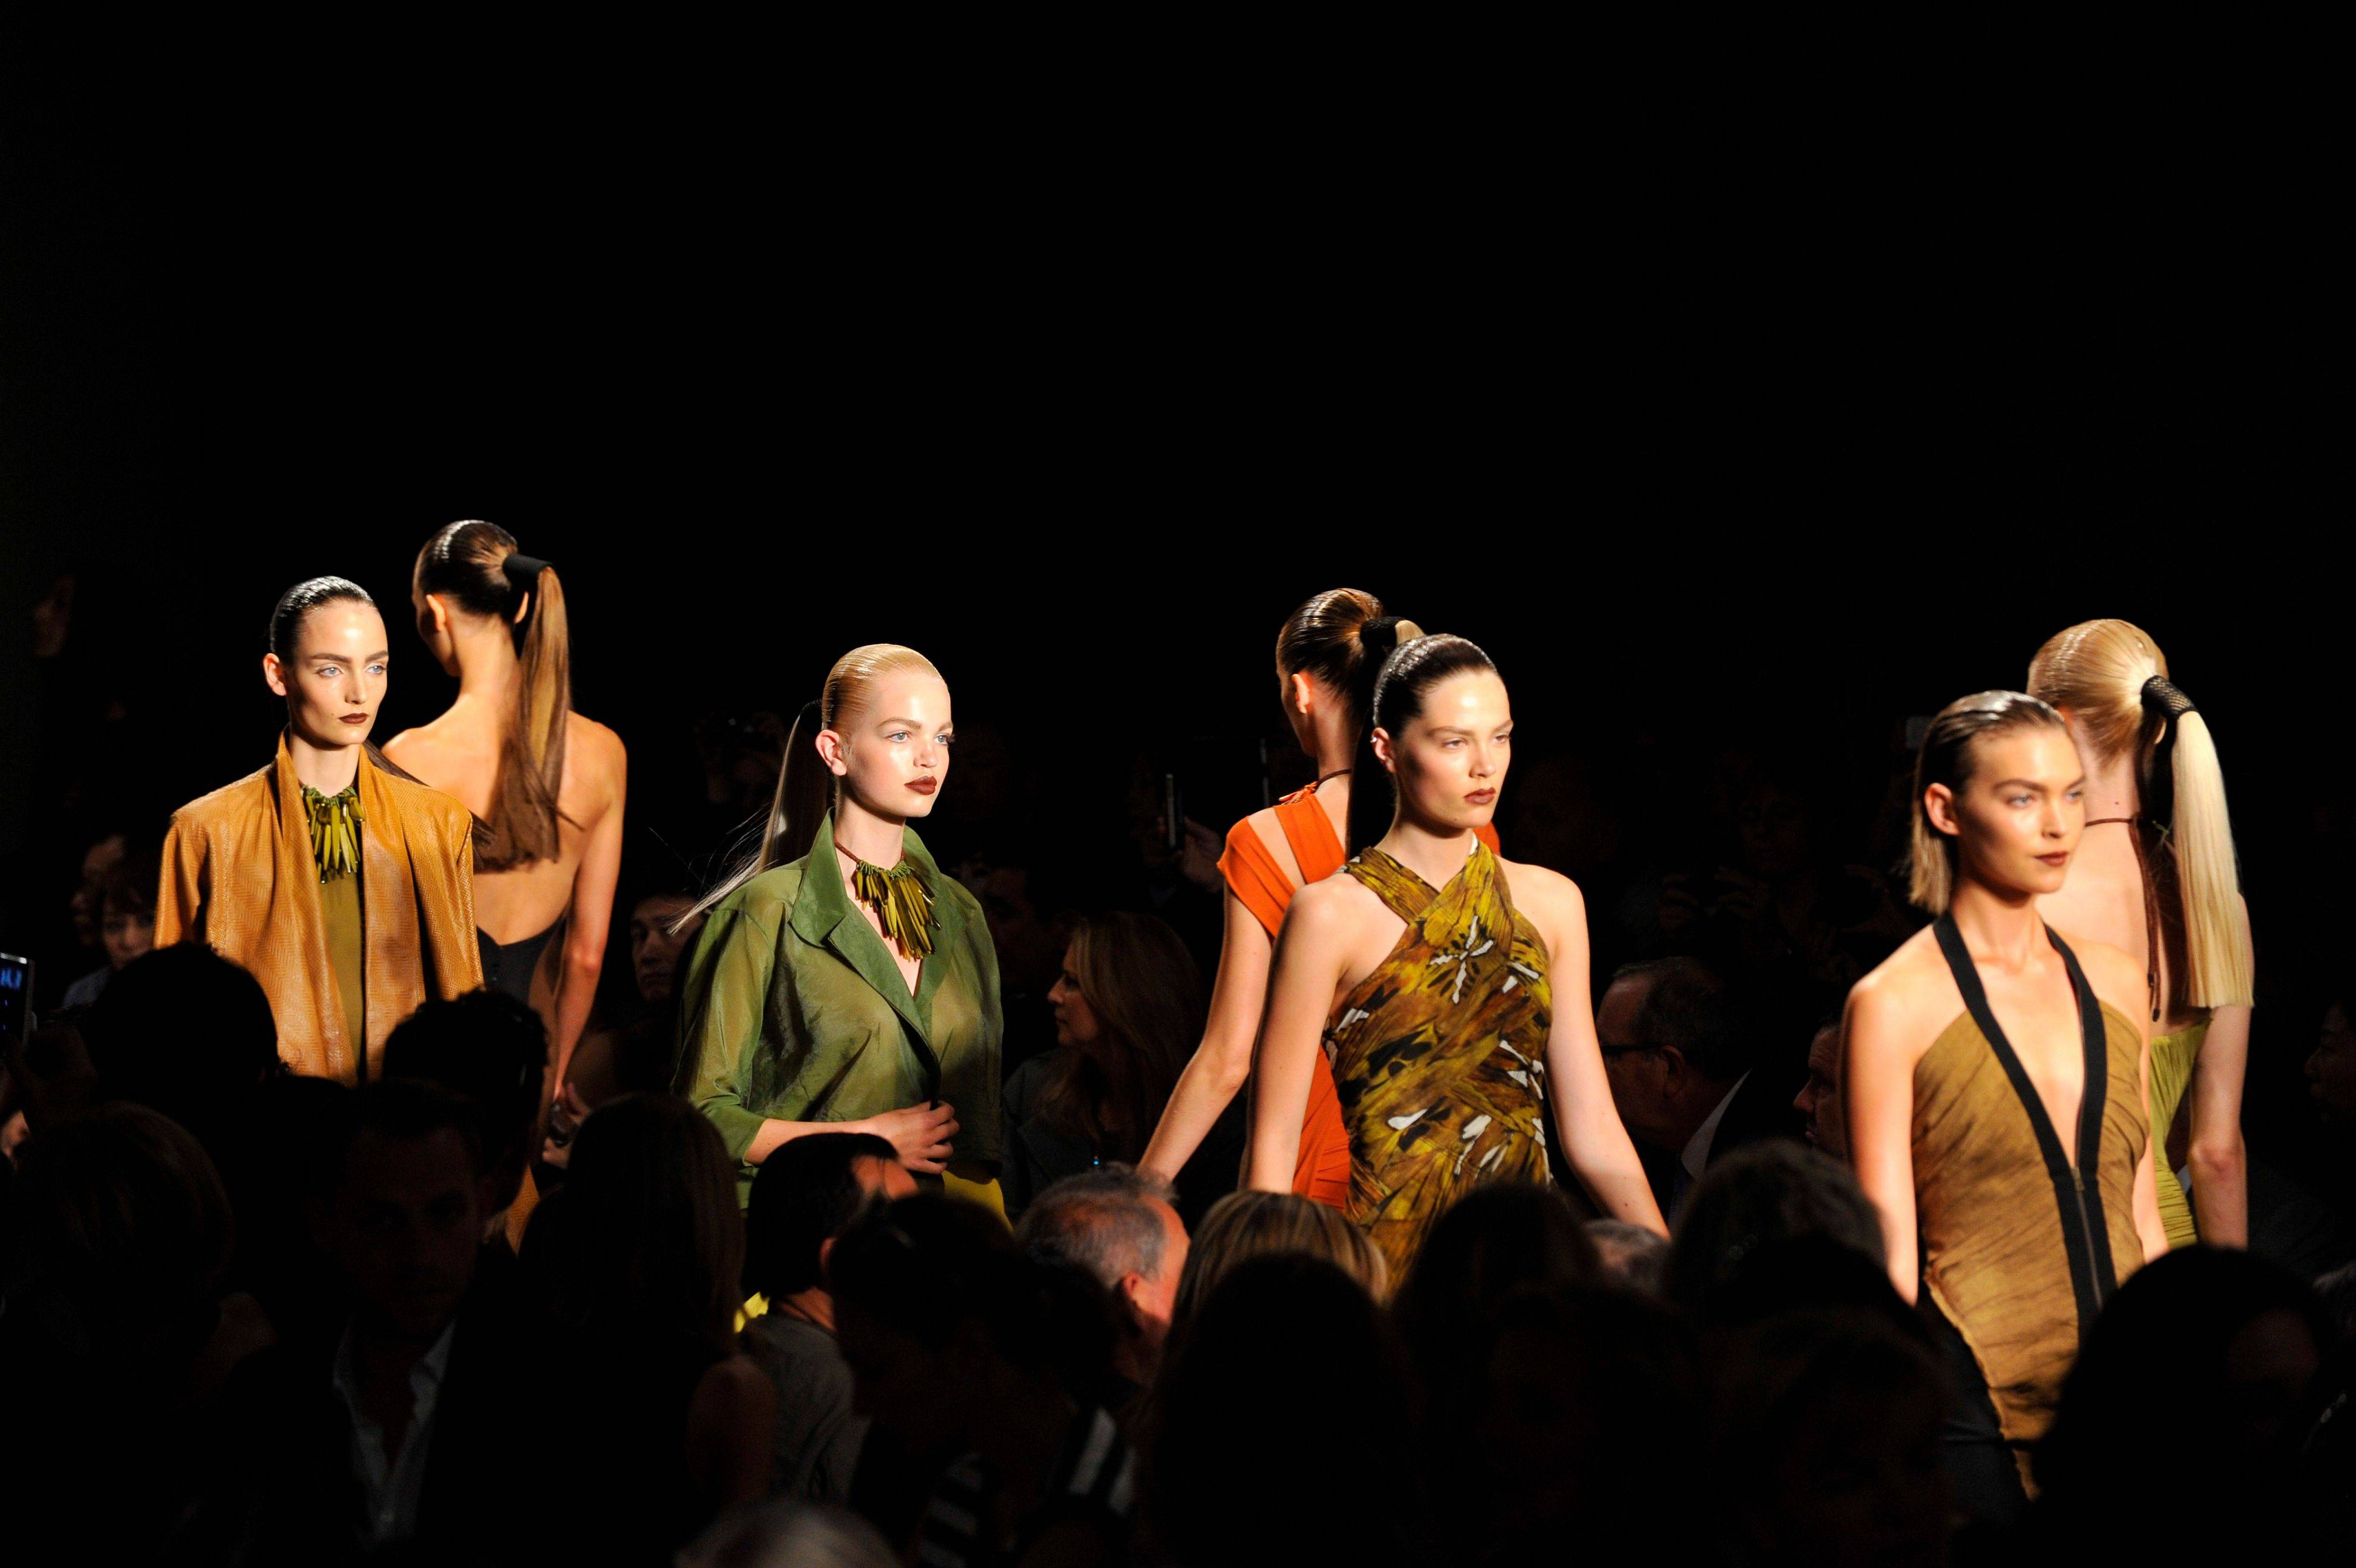 Spring 2012 fashion from Donna Karan is modeled during Fashion Week, Monday, Sept. 12, 2011 in New York.